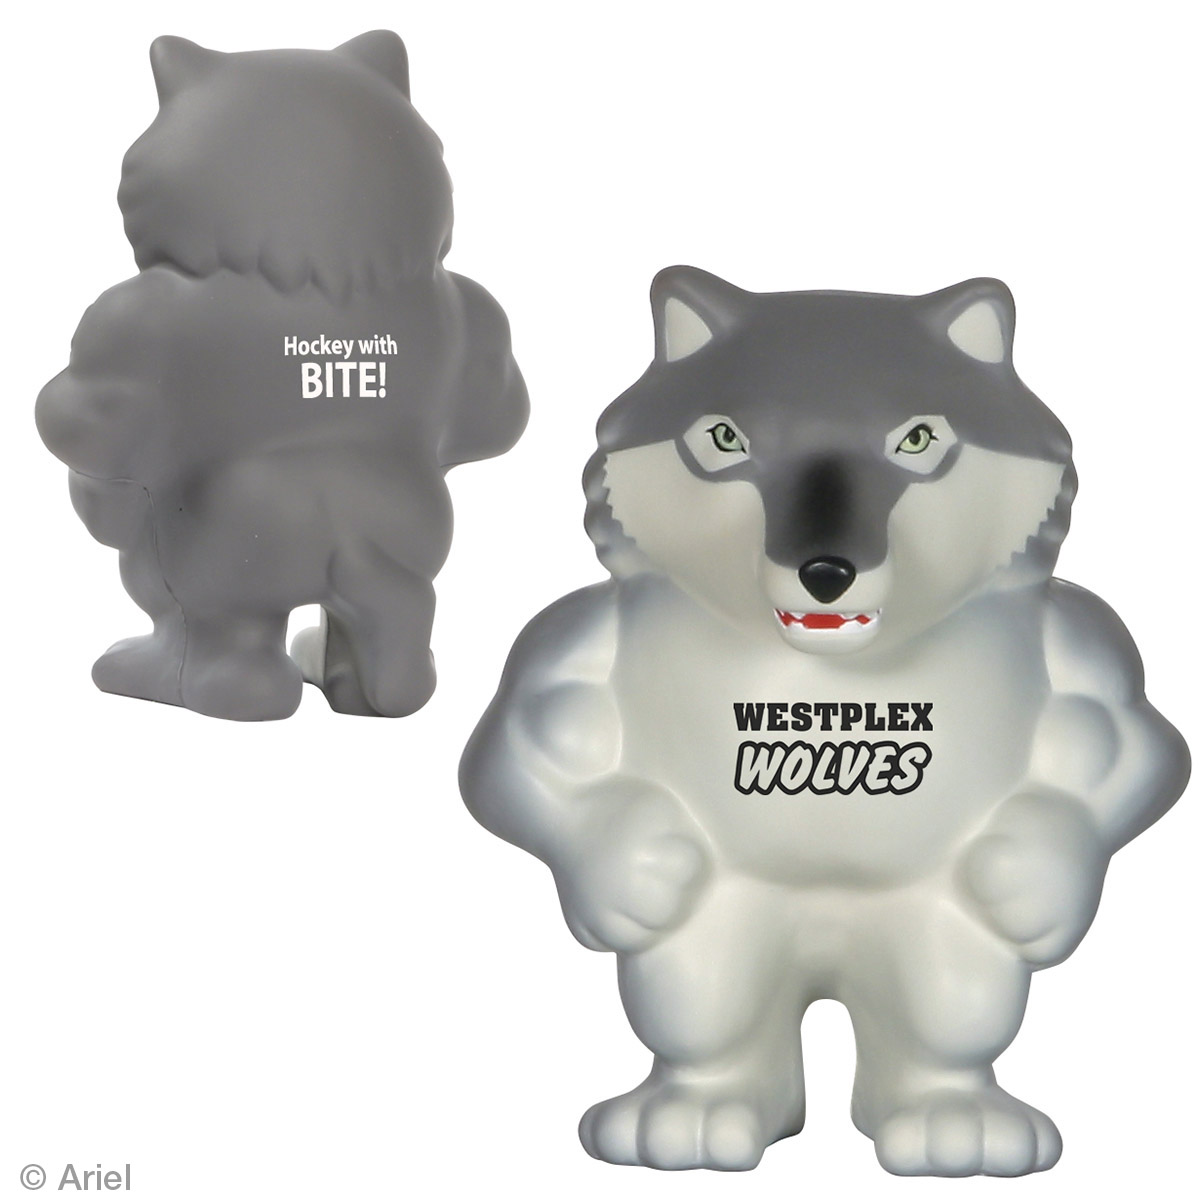 Wolf Mascot Stress Reliever, LMT-WL07 - 1 Colour Imprint